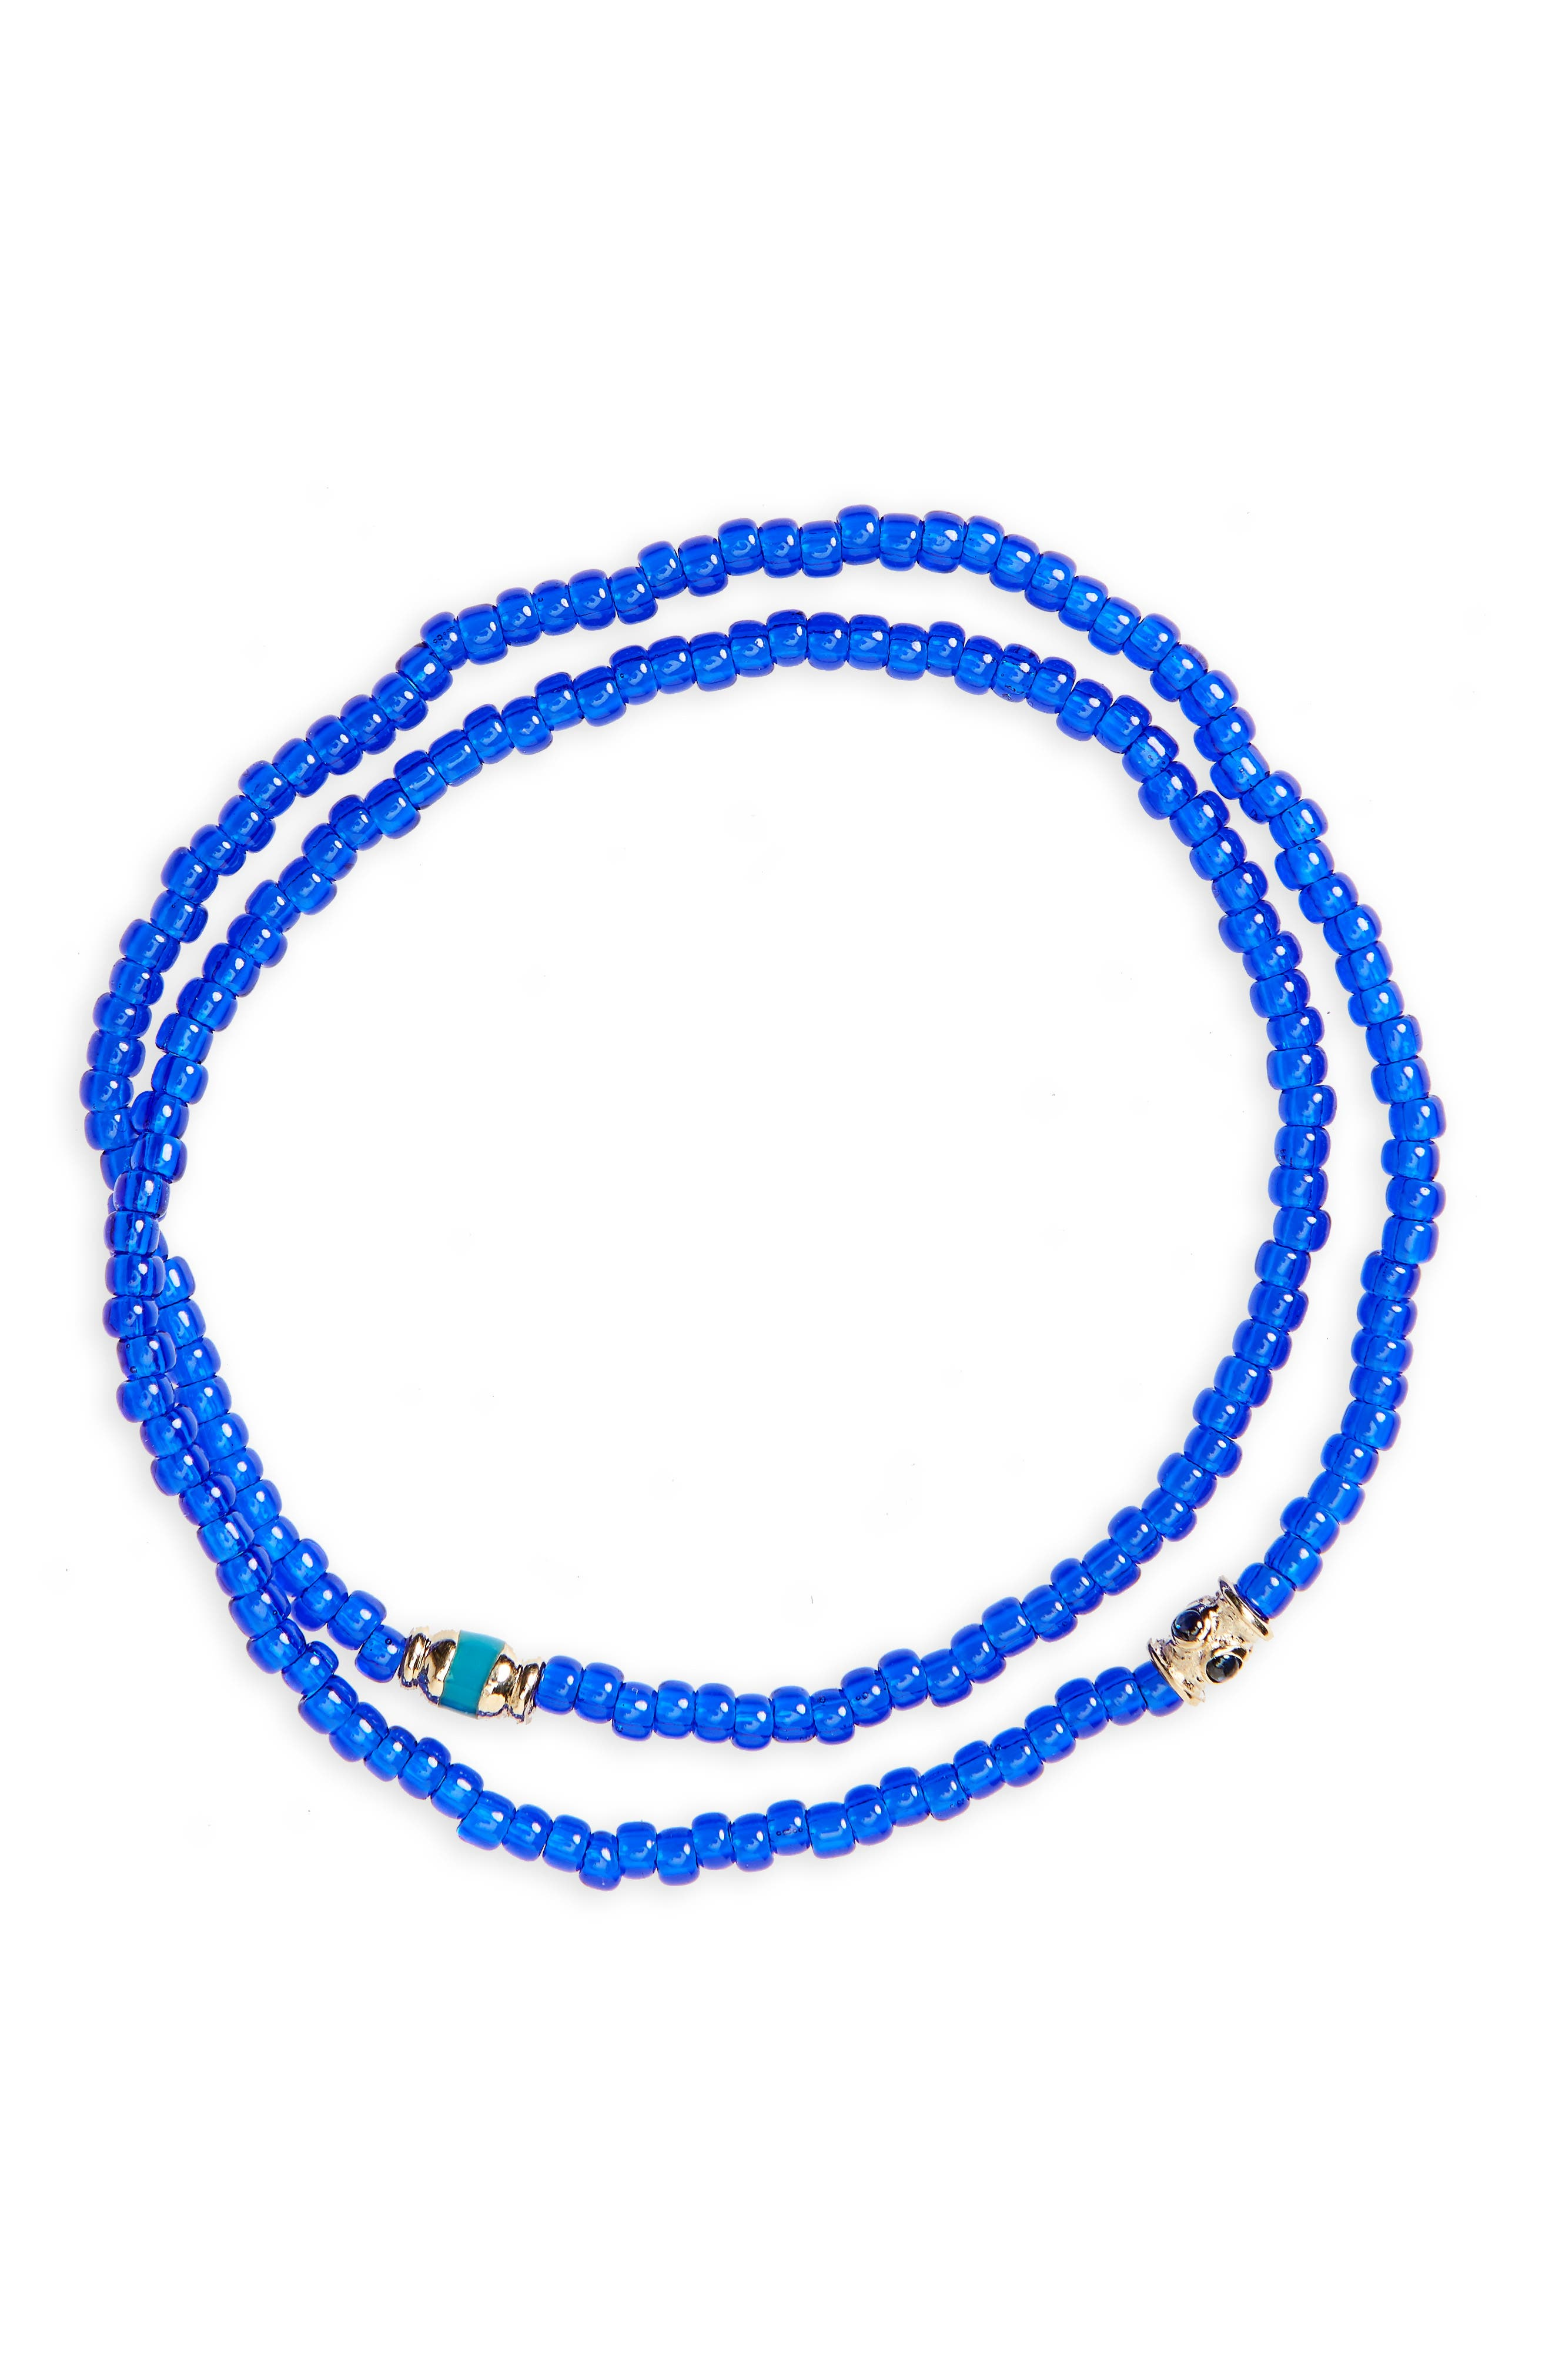 Sapphire and Gold Double Strand Stretch Bracelet,                         Main,                         color,